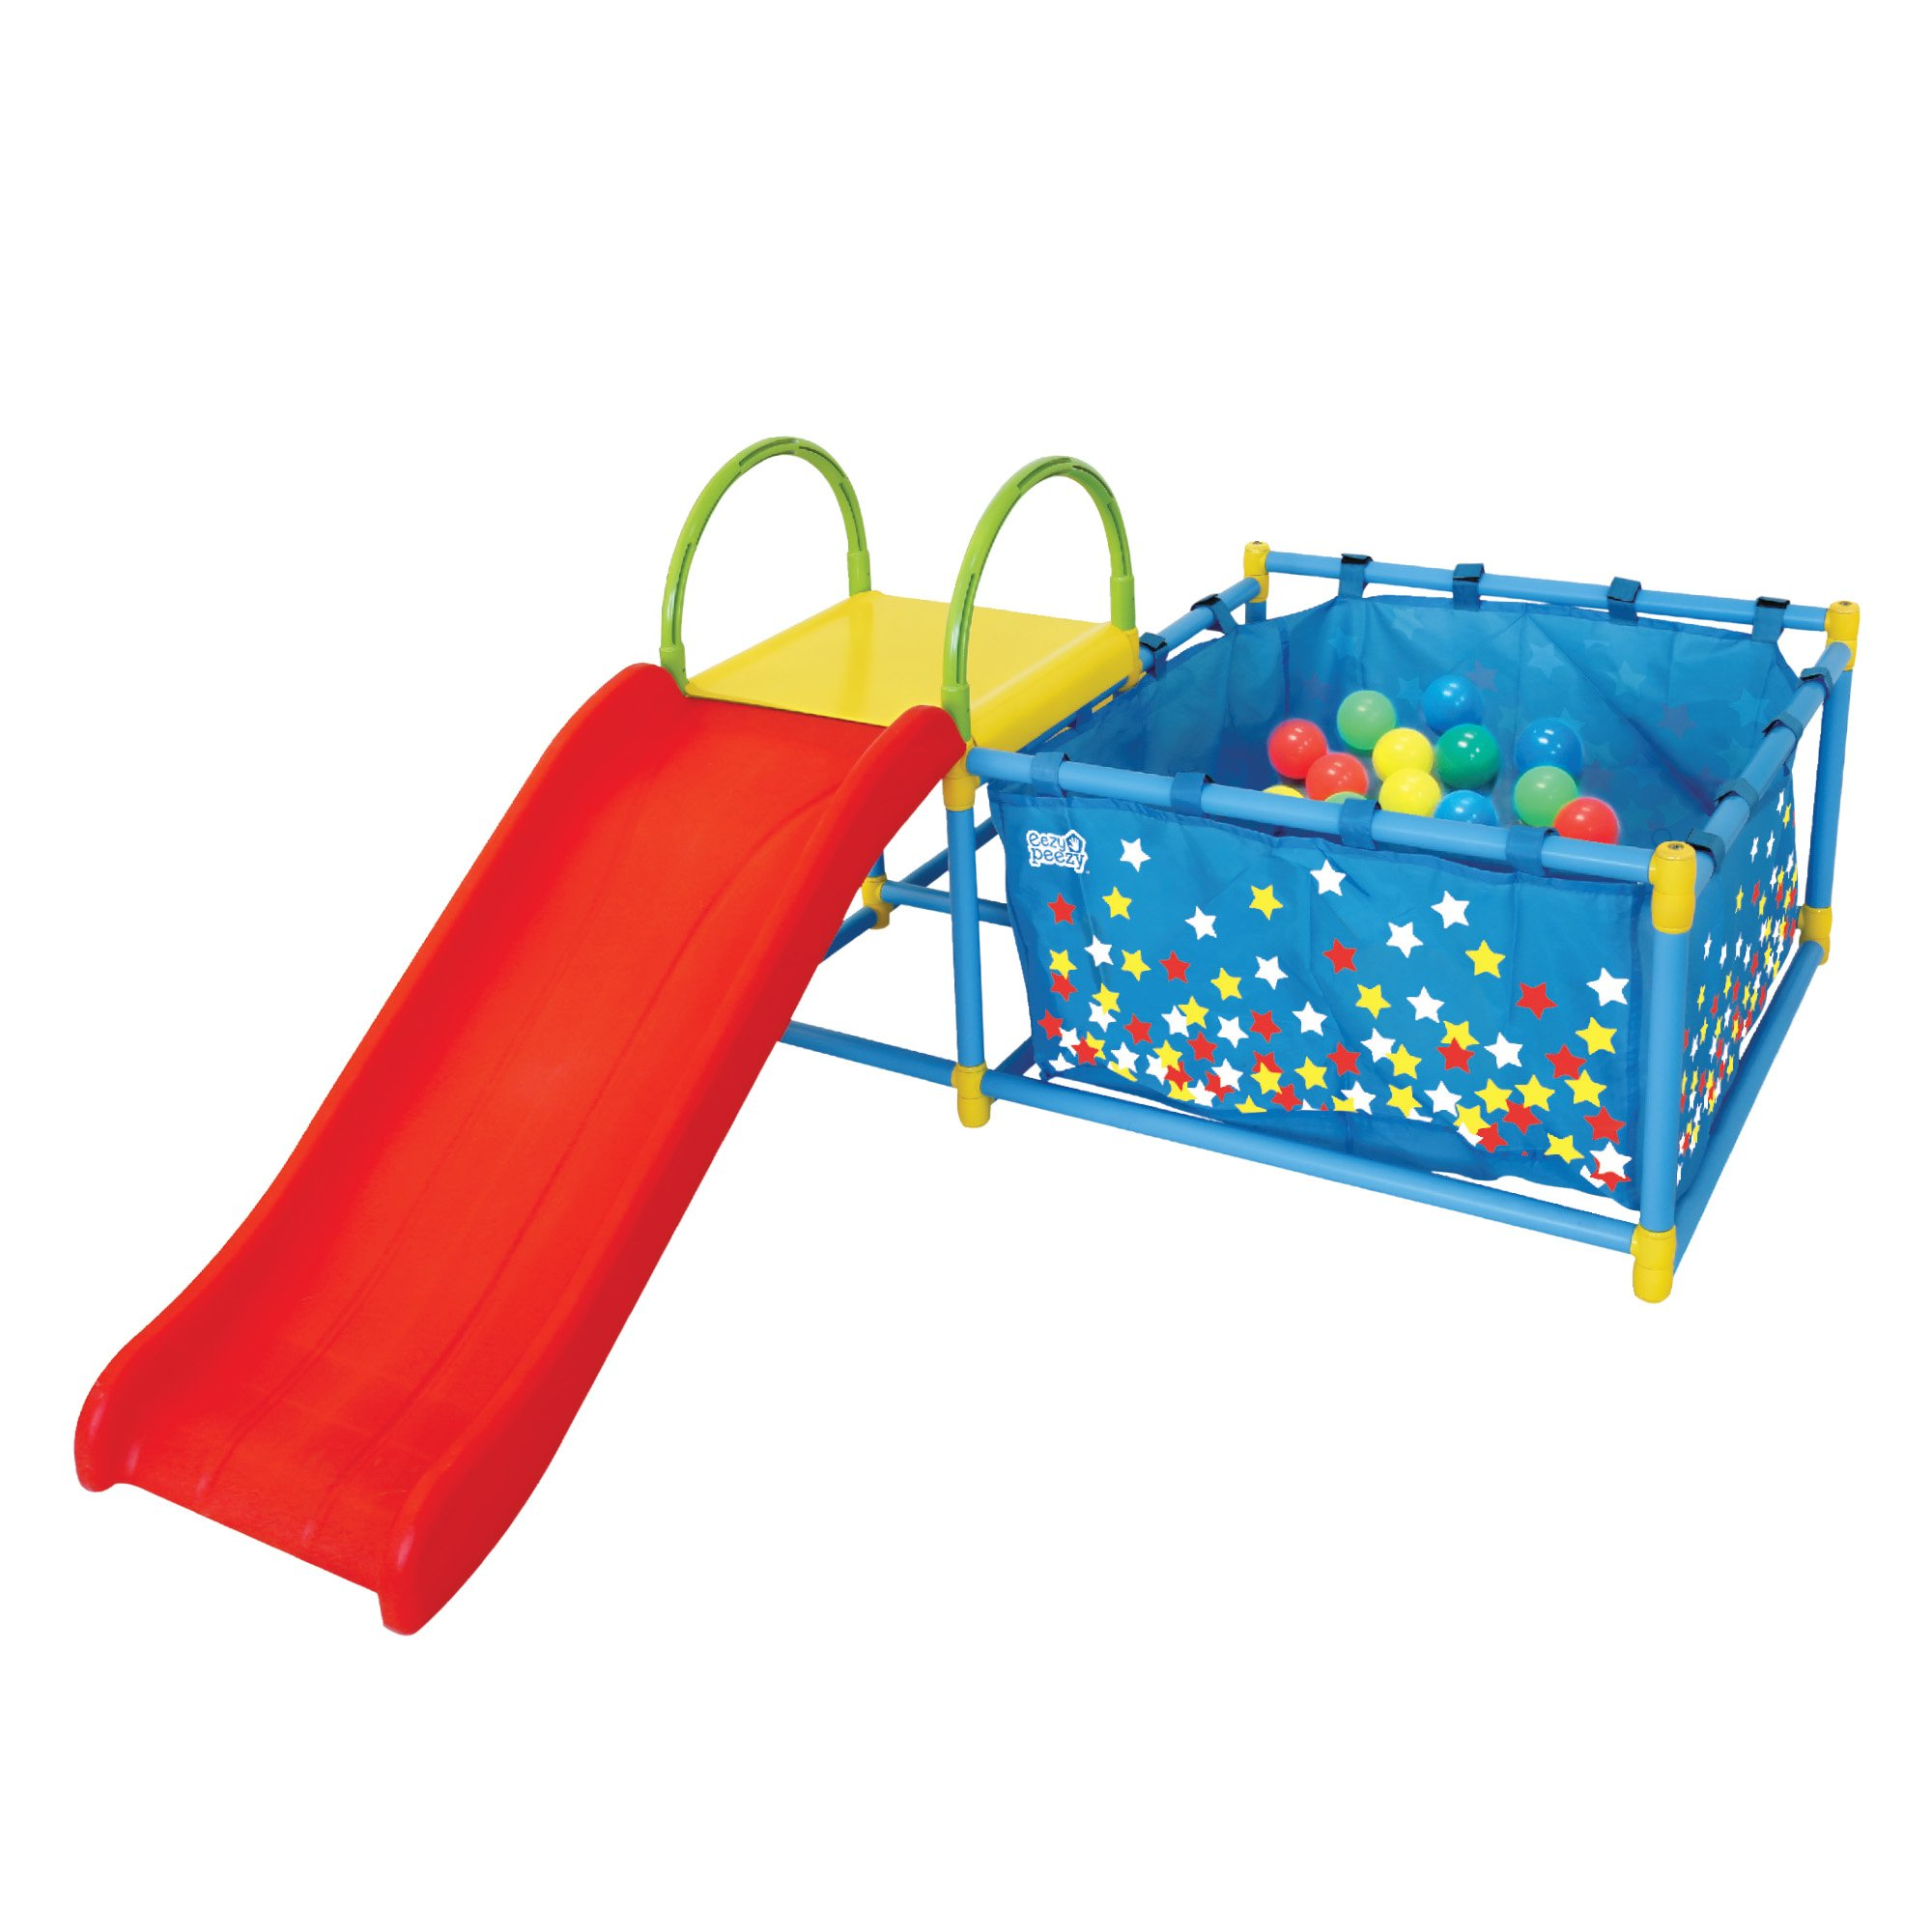 Eezy Peezy Active Play 3 in 1 Jungle Gym Foldable PlaySet - Includes Slide, Ball Pit, & Toss Target with 50 Colorful Balls by Eezy Peezy (Image #1)